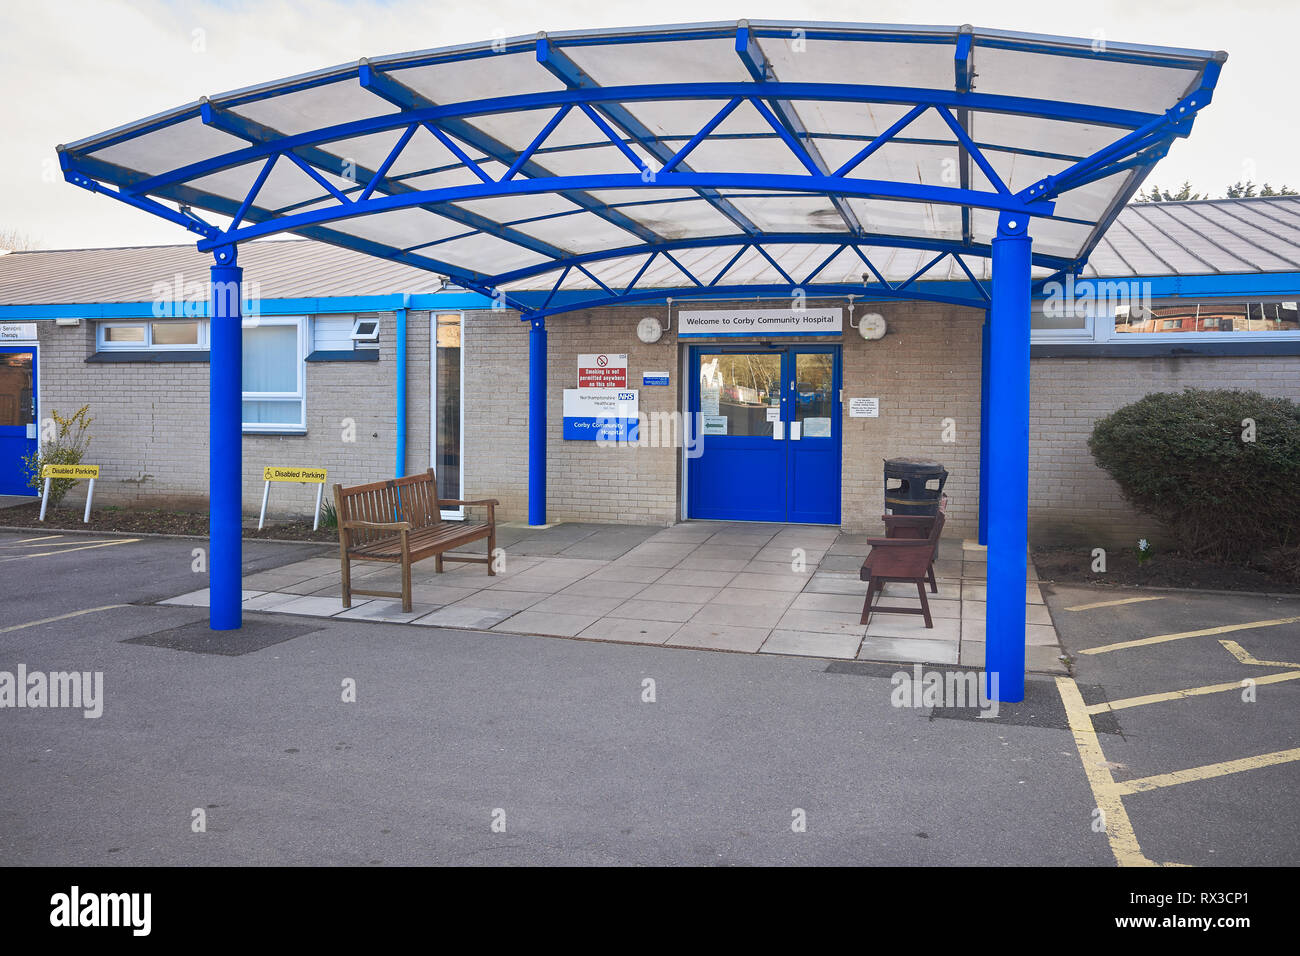 Entrance to the Community hospital at the Lakeside health campus opposite the boating lake in Corby, England. - Stock Image